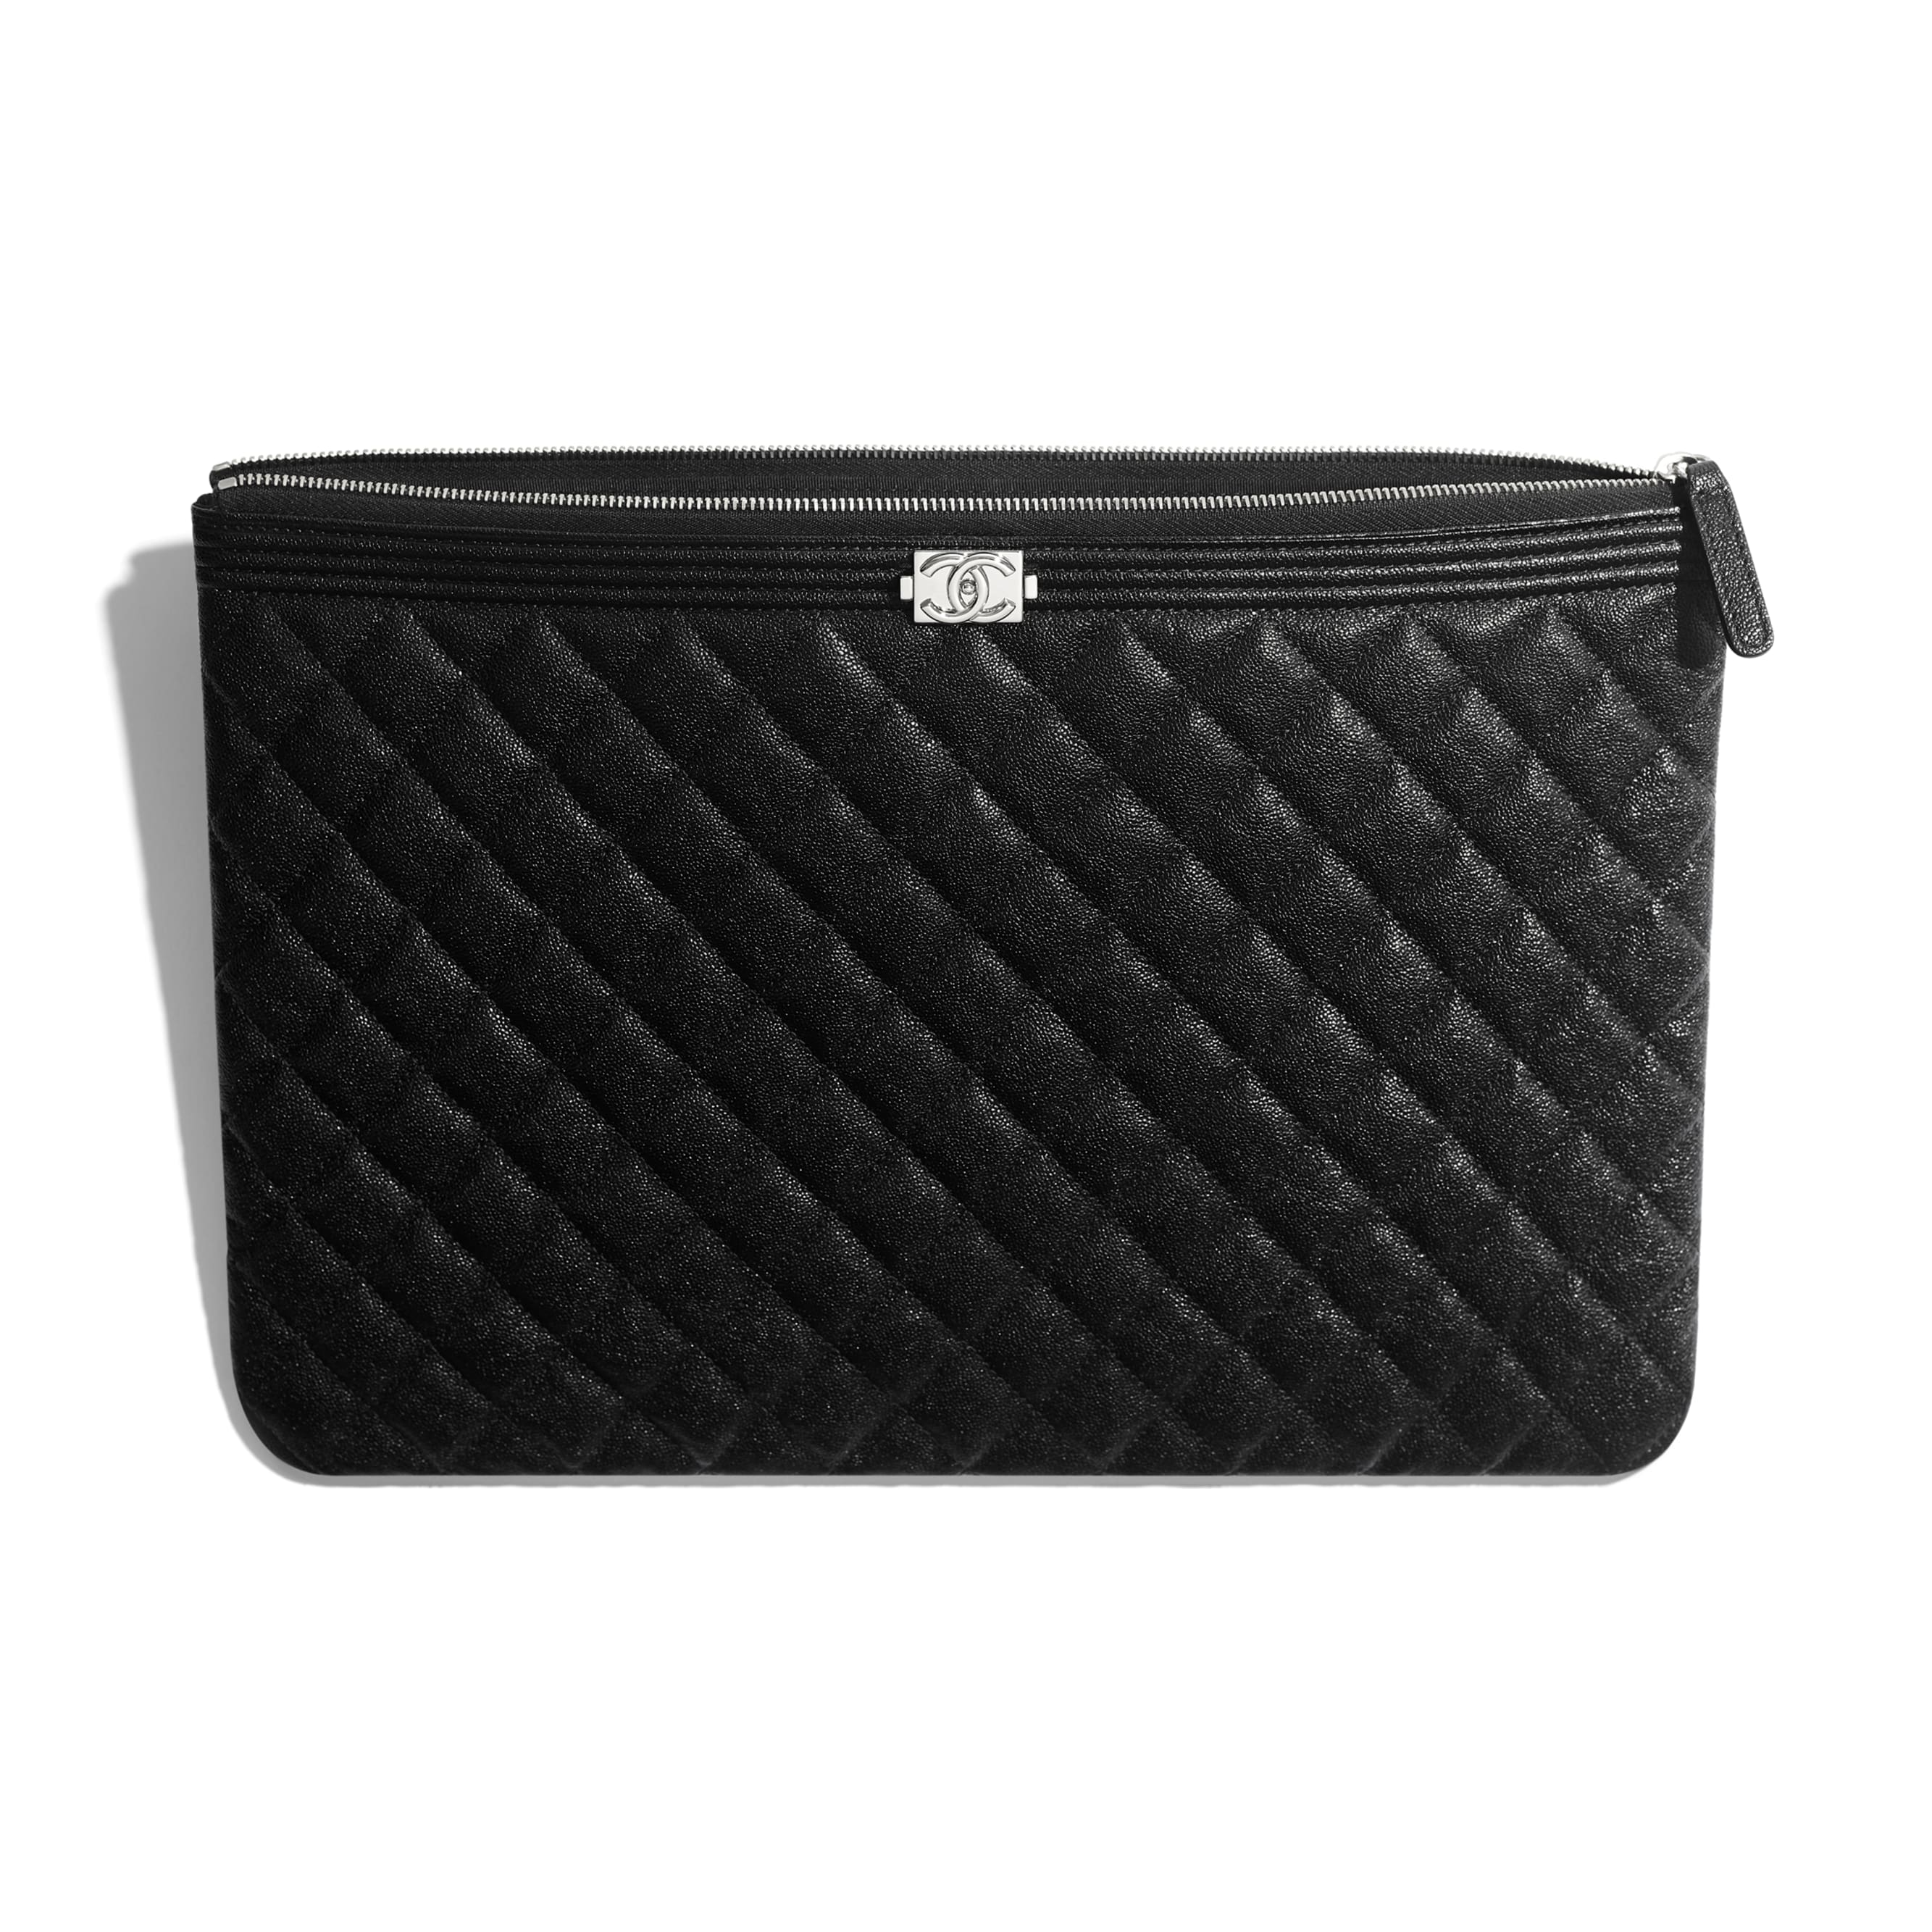 BOY CHANEL Large Pouch - Black - Grained Calfskin & Silver-Tone Metal - CHANEL - Other view - see standard sized version